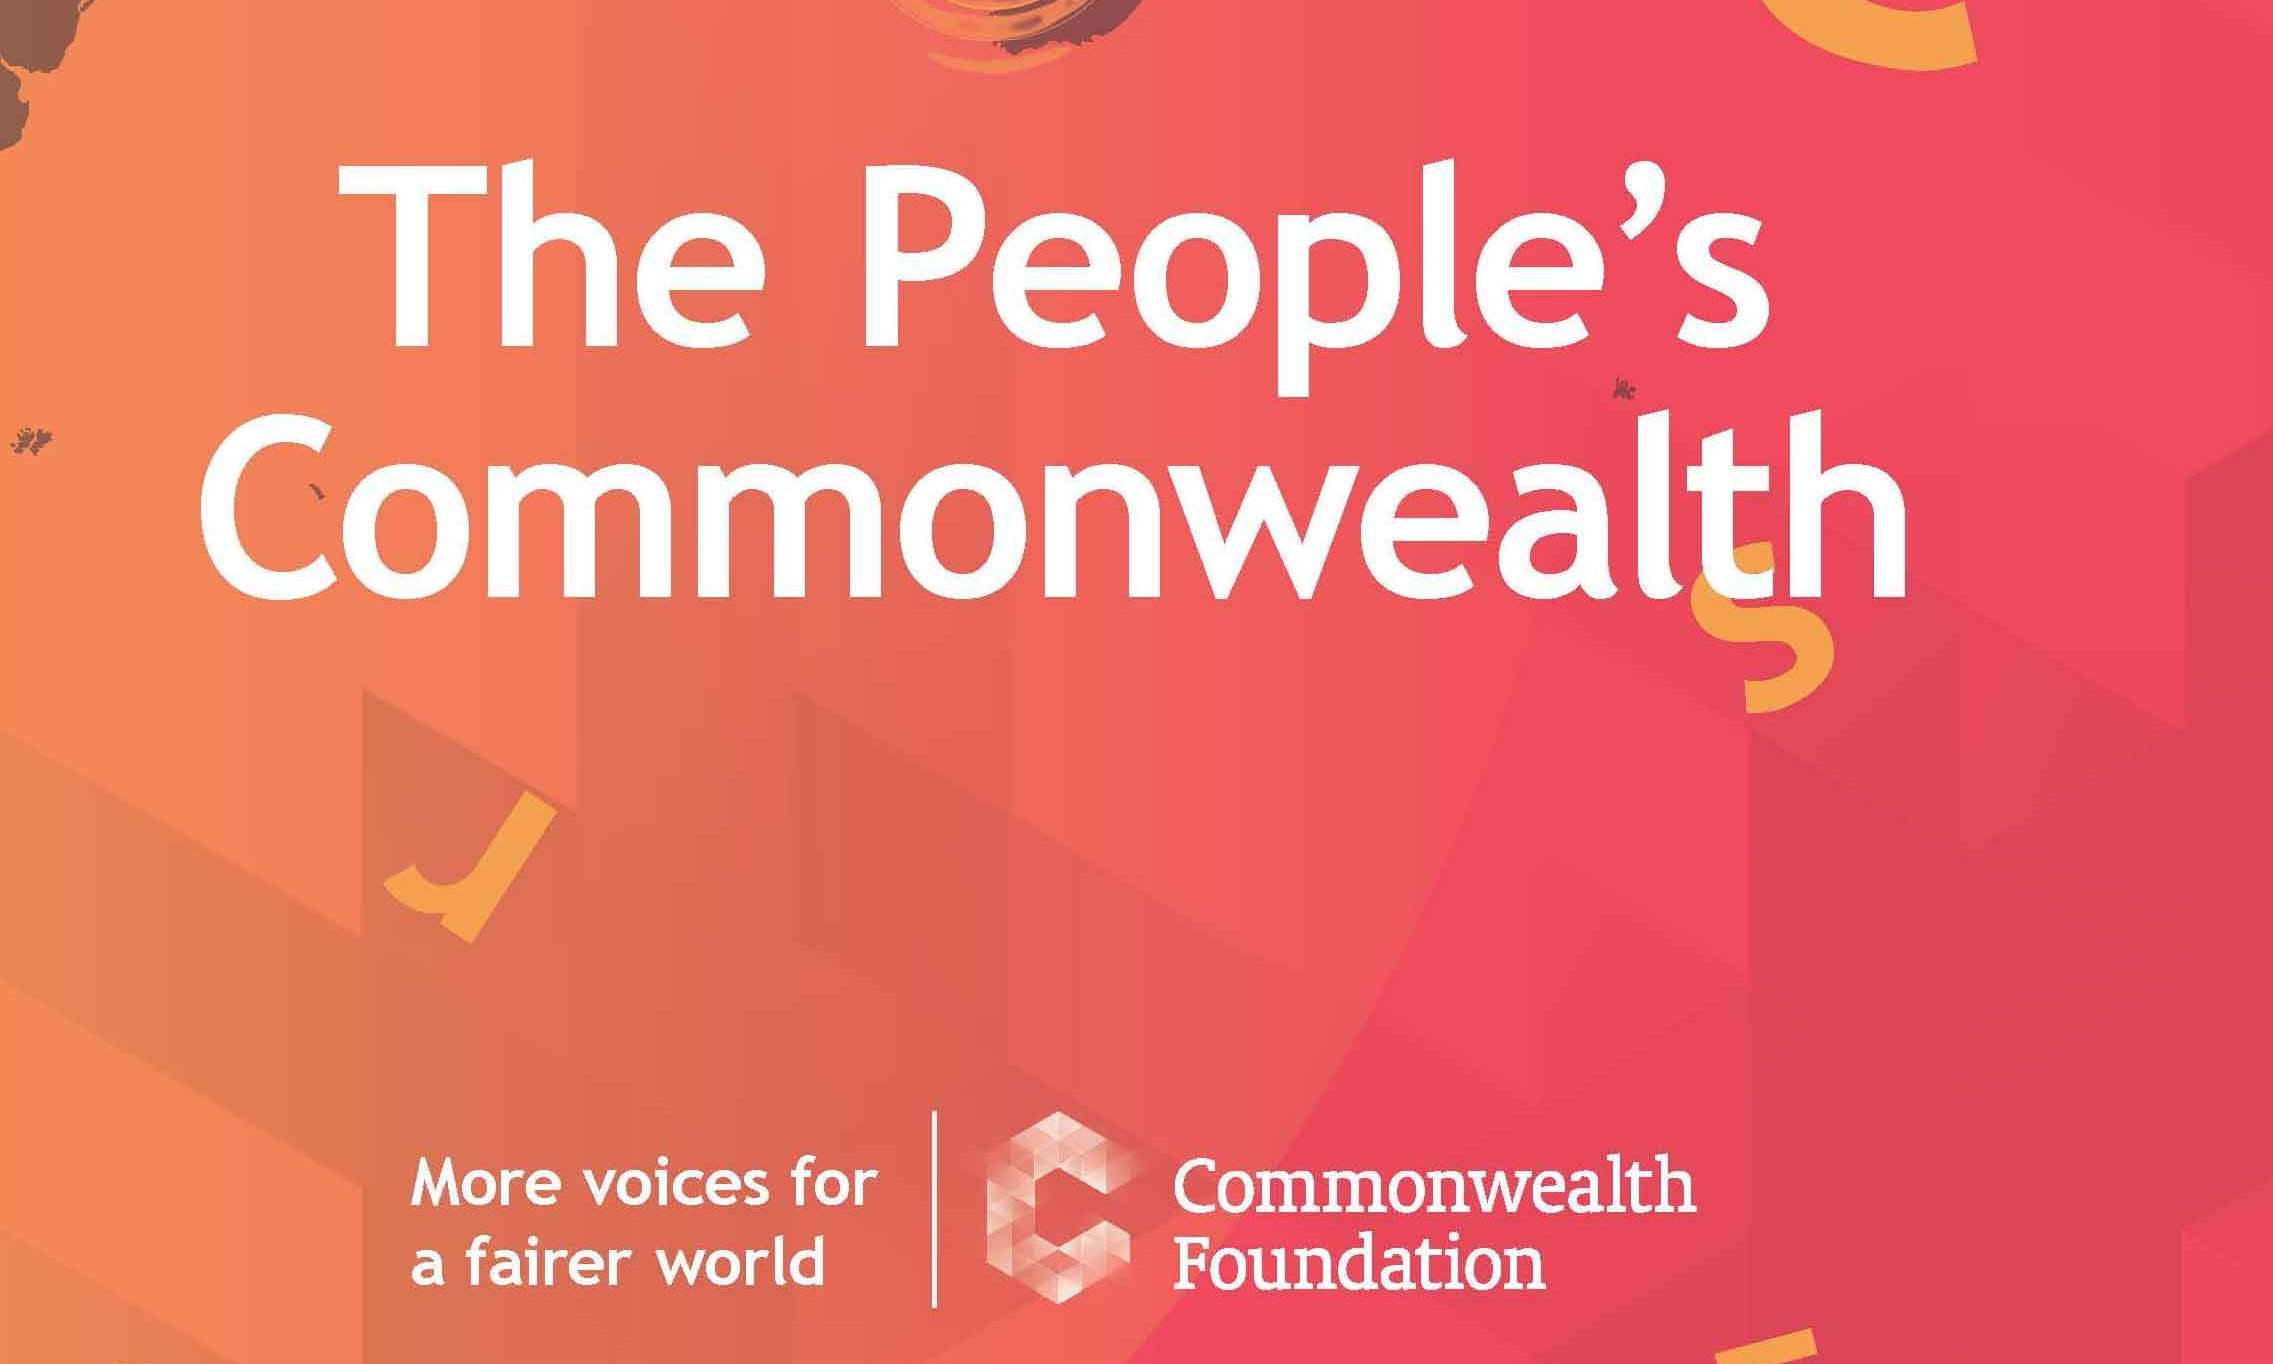 The People's Commonwealth: More voices for a fairer world